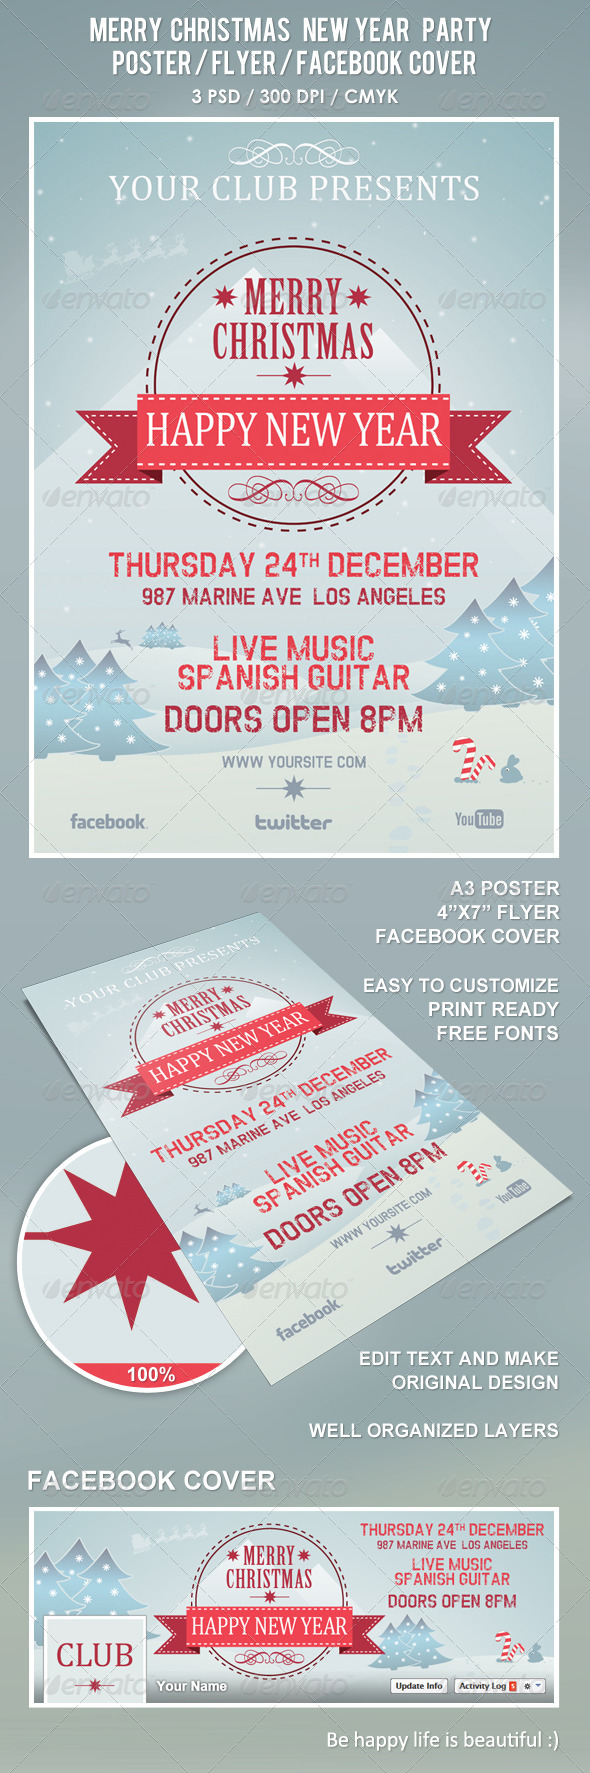 GraphicRiver Christmas New Year Party Poster Flyer Facebook 6227277